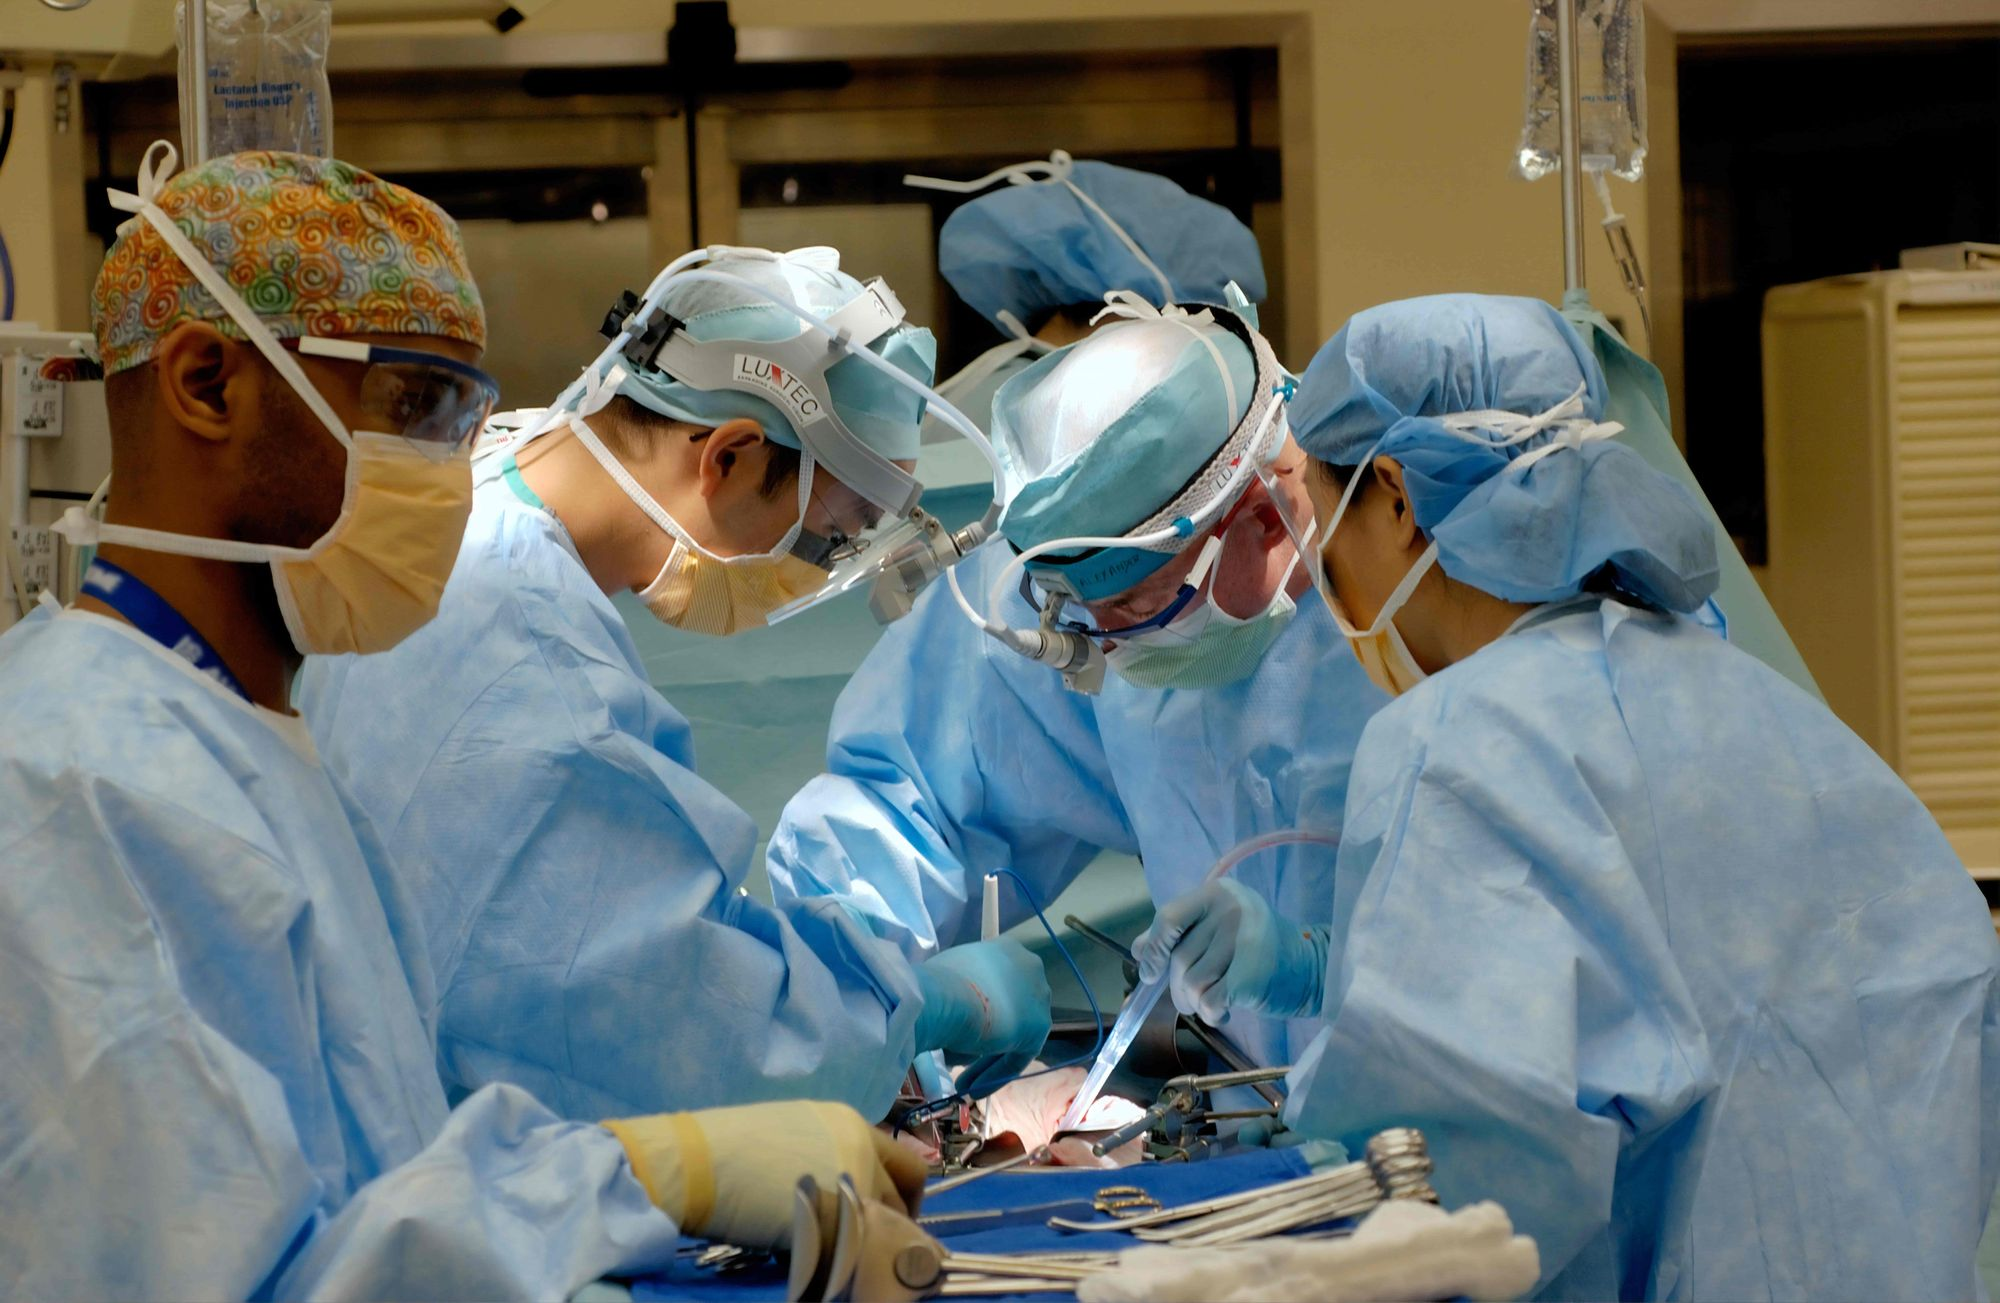 A few surgeons are operating on a patient.